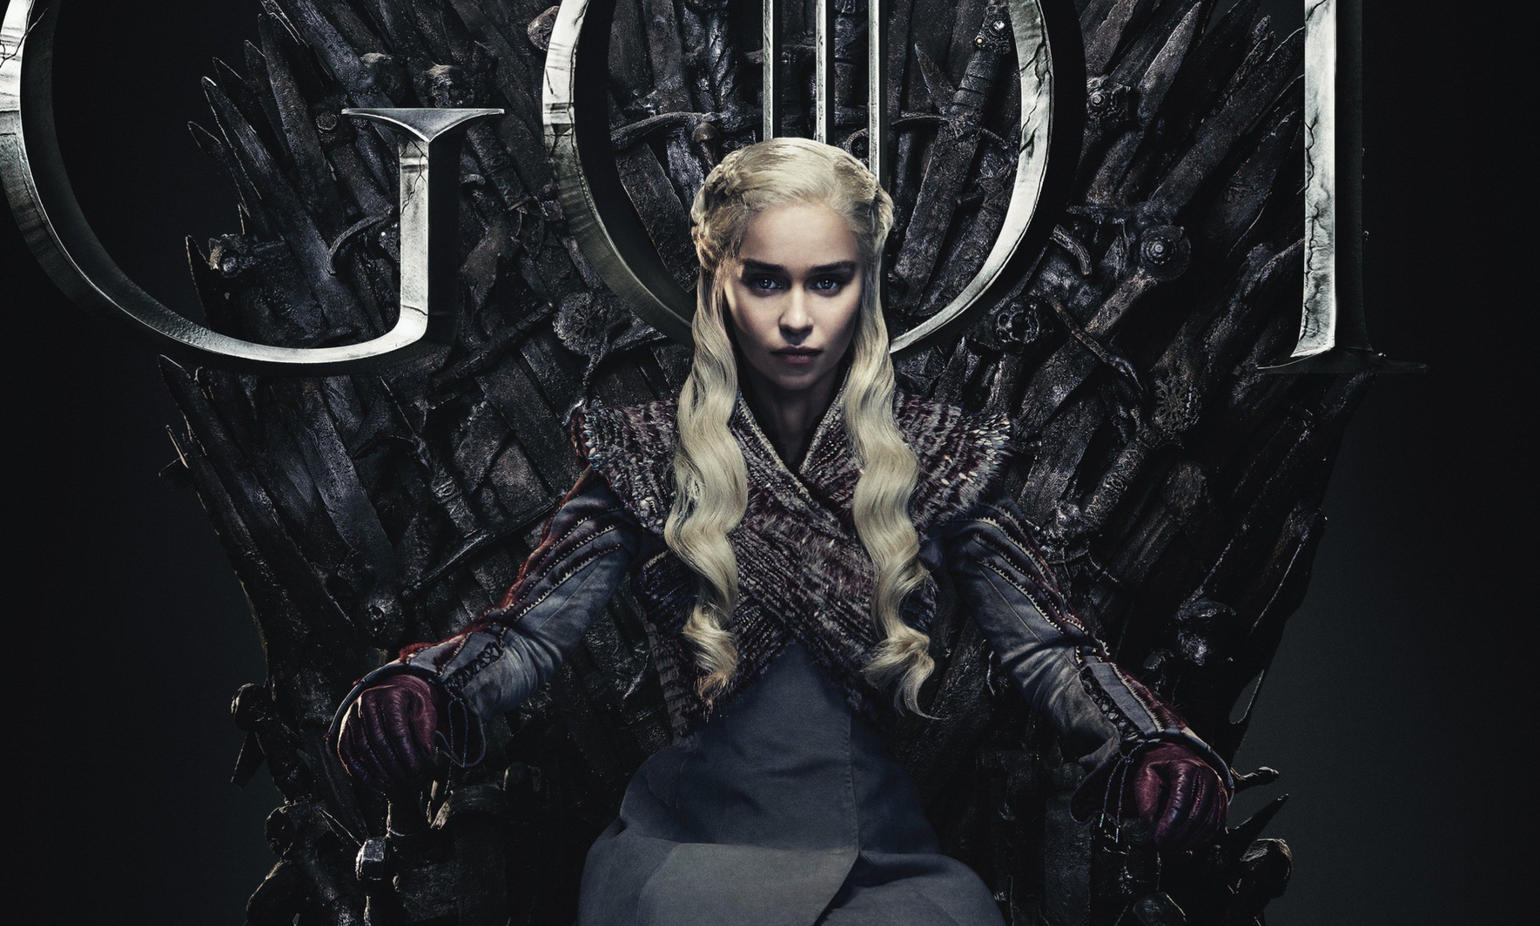 When does Game of Thrones season 8 start? When will the first episode air on TV?